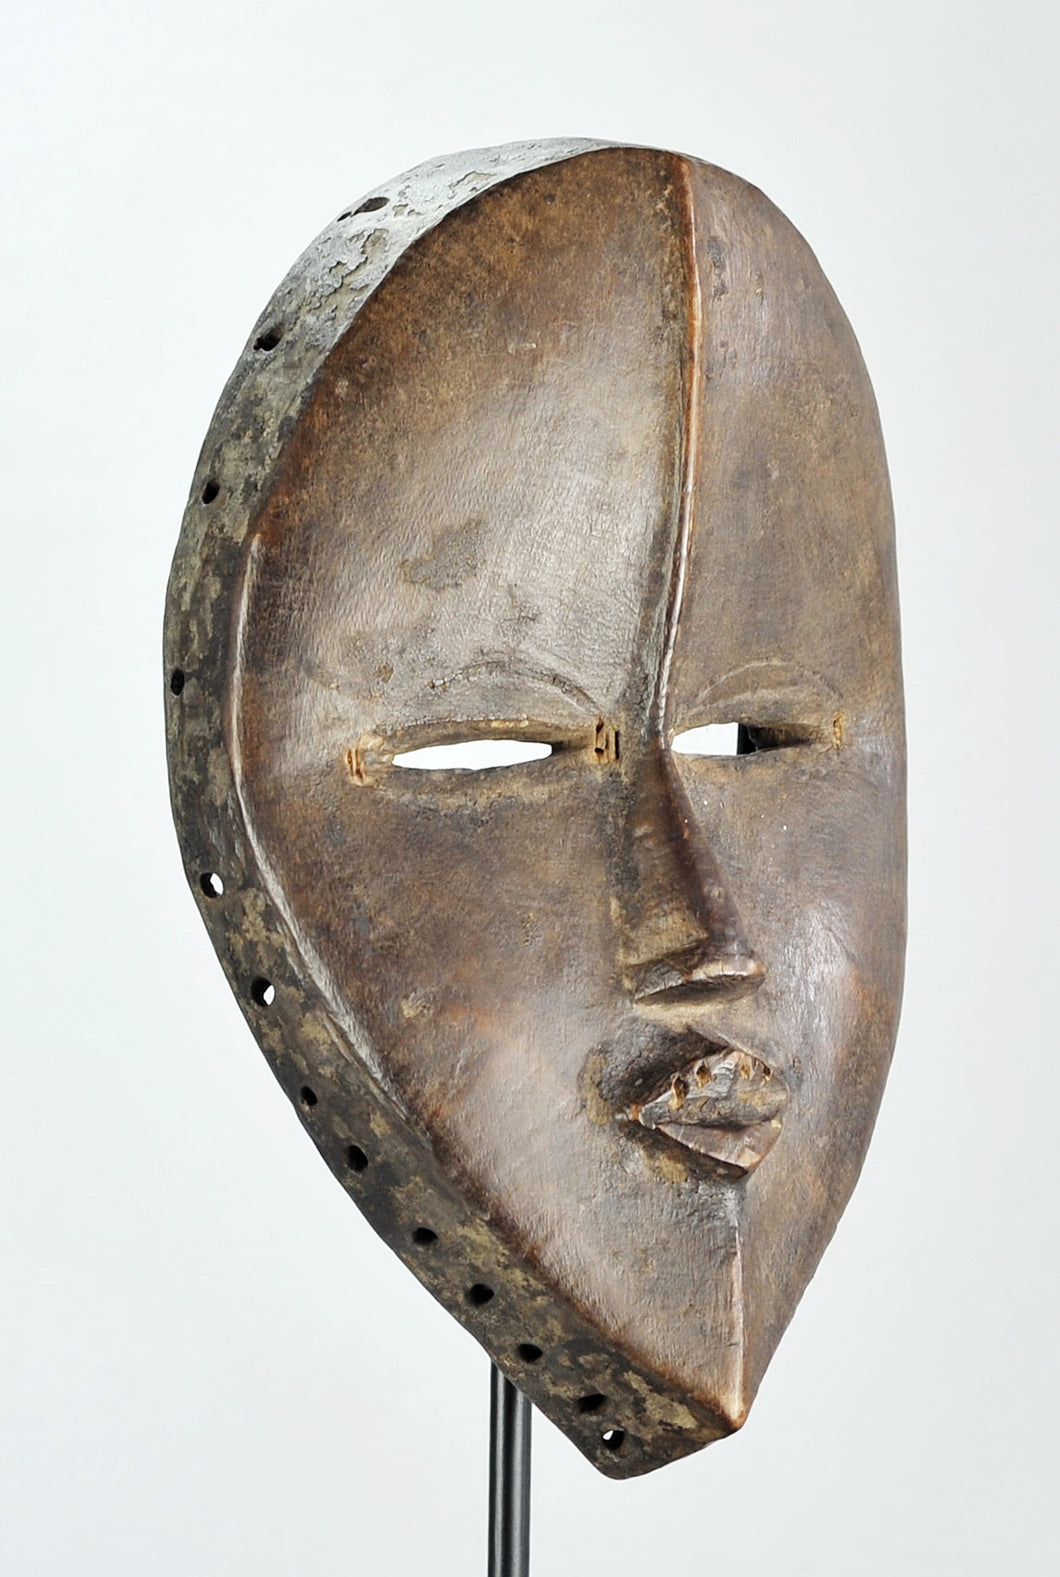 Côte d'Ivoire Superbe masque Dan mask Ivory Coast African tribal Art Africain